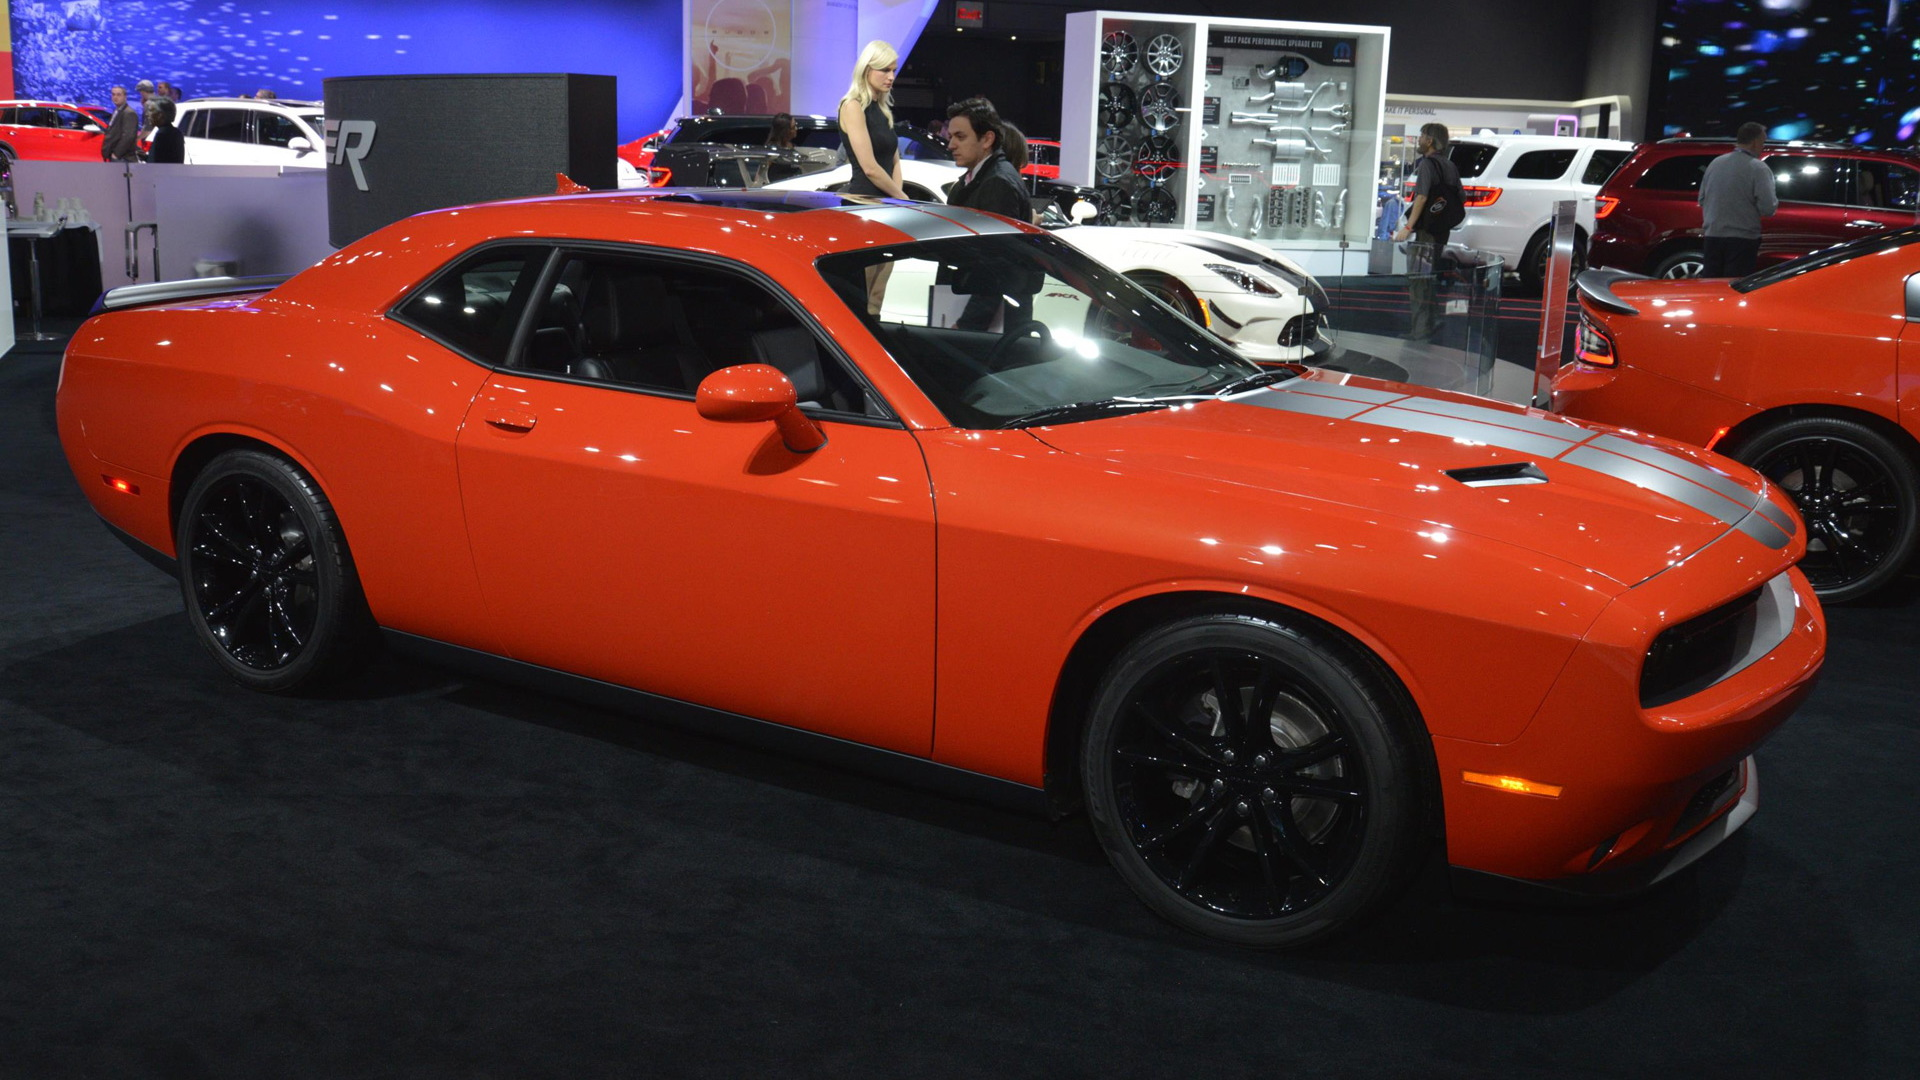 2016 Dodge Challenger and Charger in Go Mango, 2016 New York Auto Show